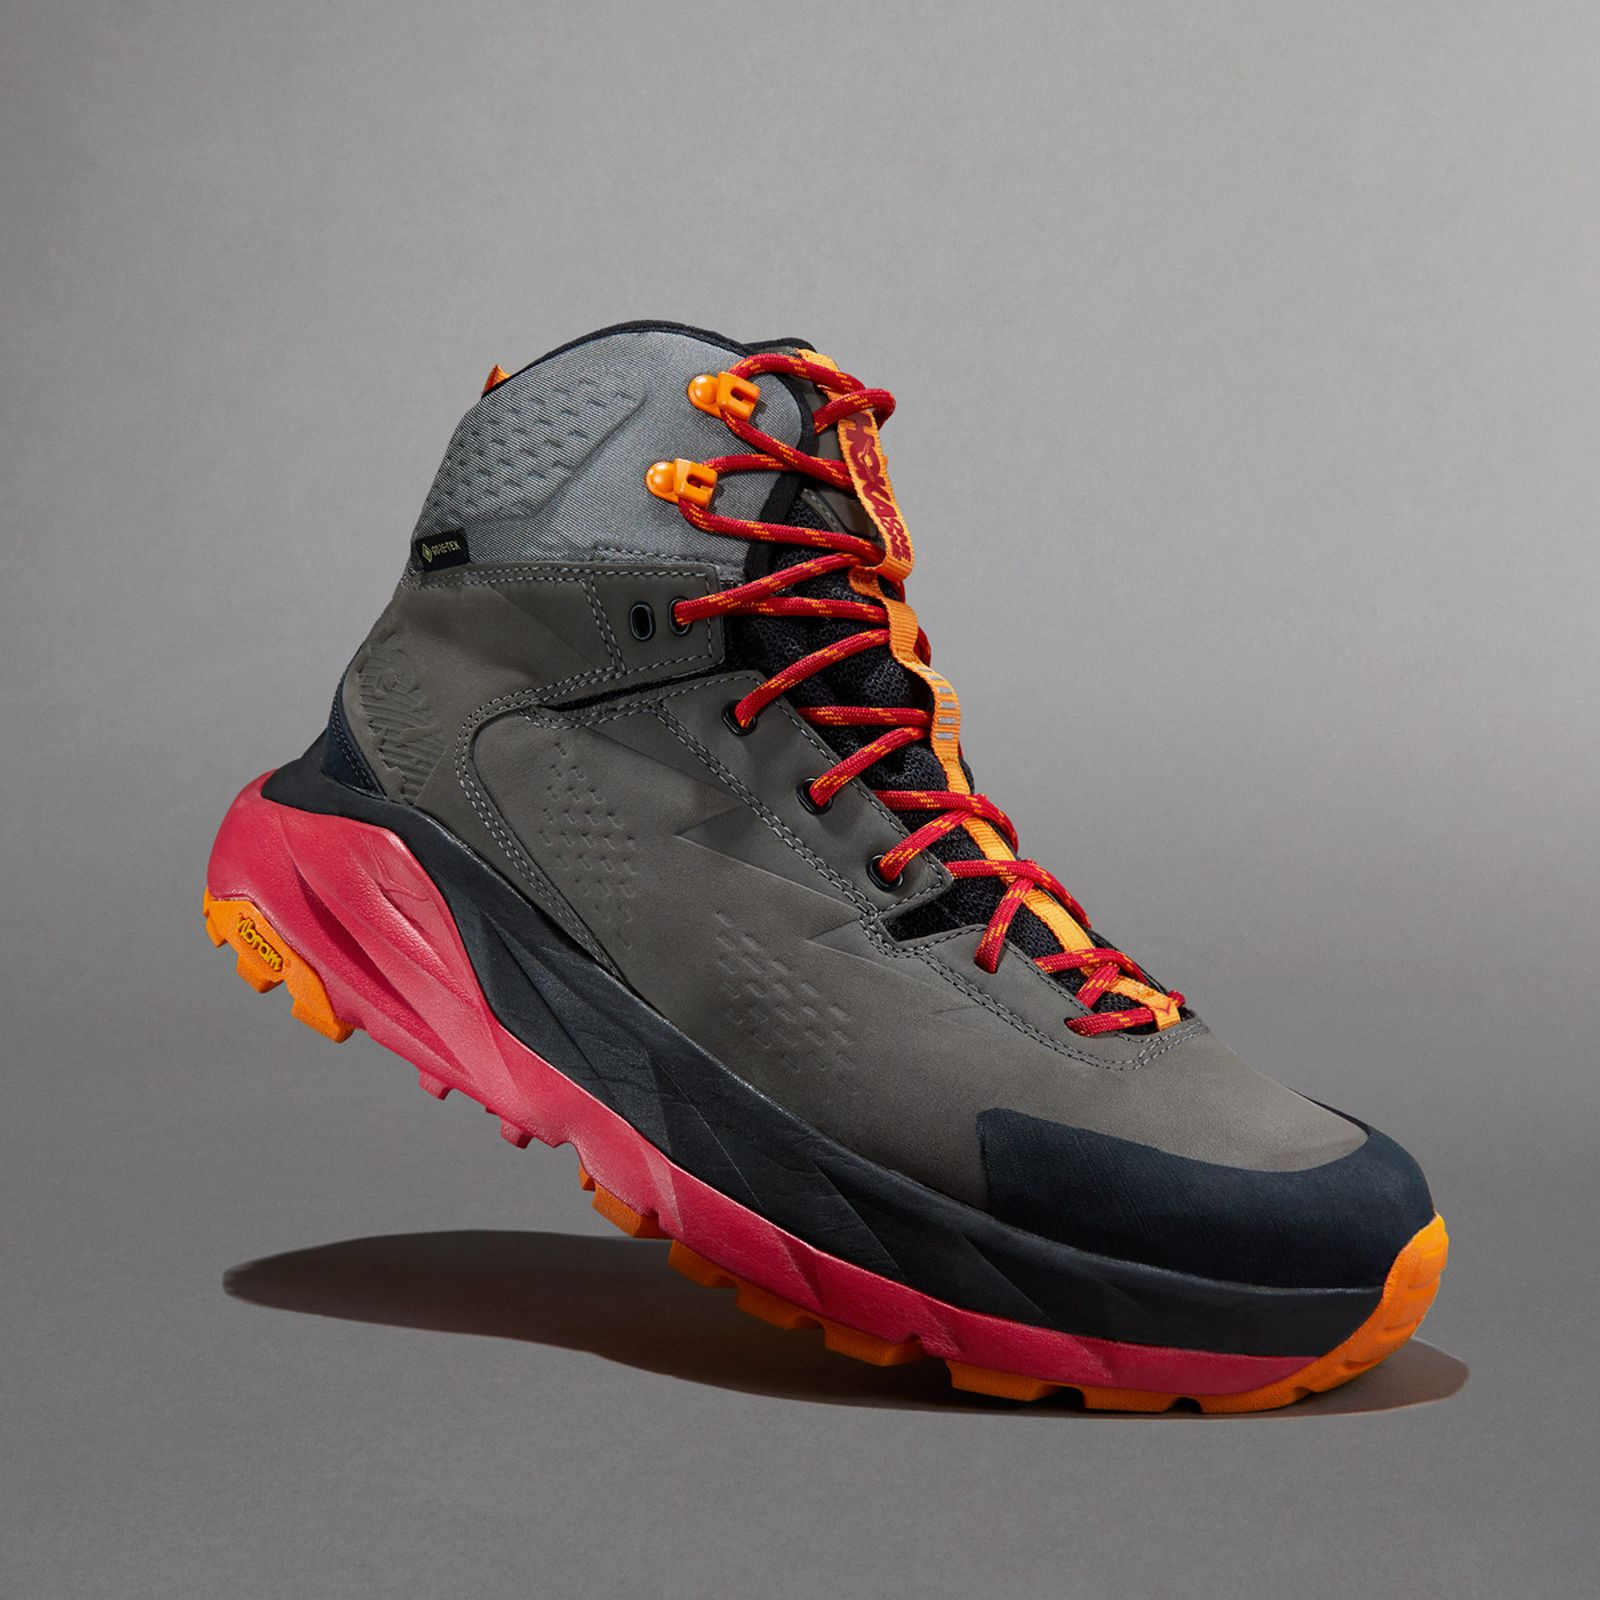 01tested-5-trekking-boots-find-best-outdoors-style-